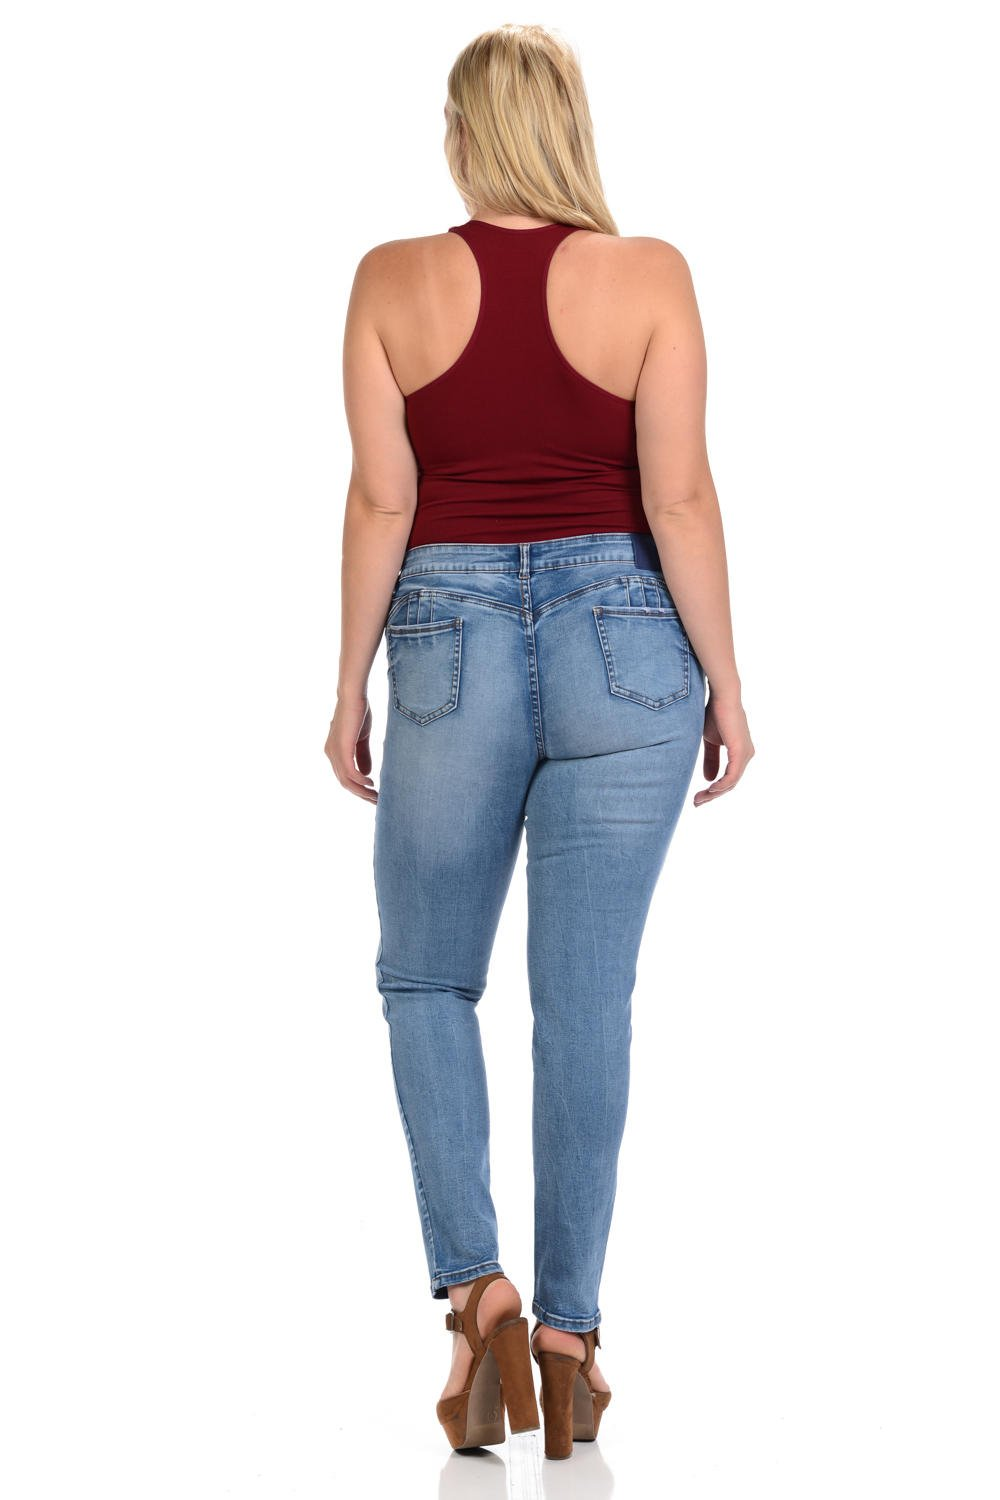 Sweet Look Black Edition Women's Jeans · Plus Size · High Waist · Push Up · Style A283 · Blue · Size 18 by Sweet Look (Image #3)